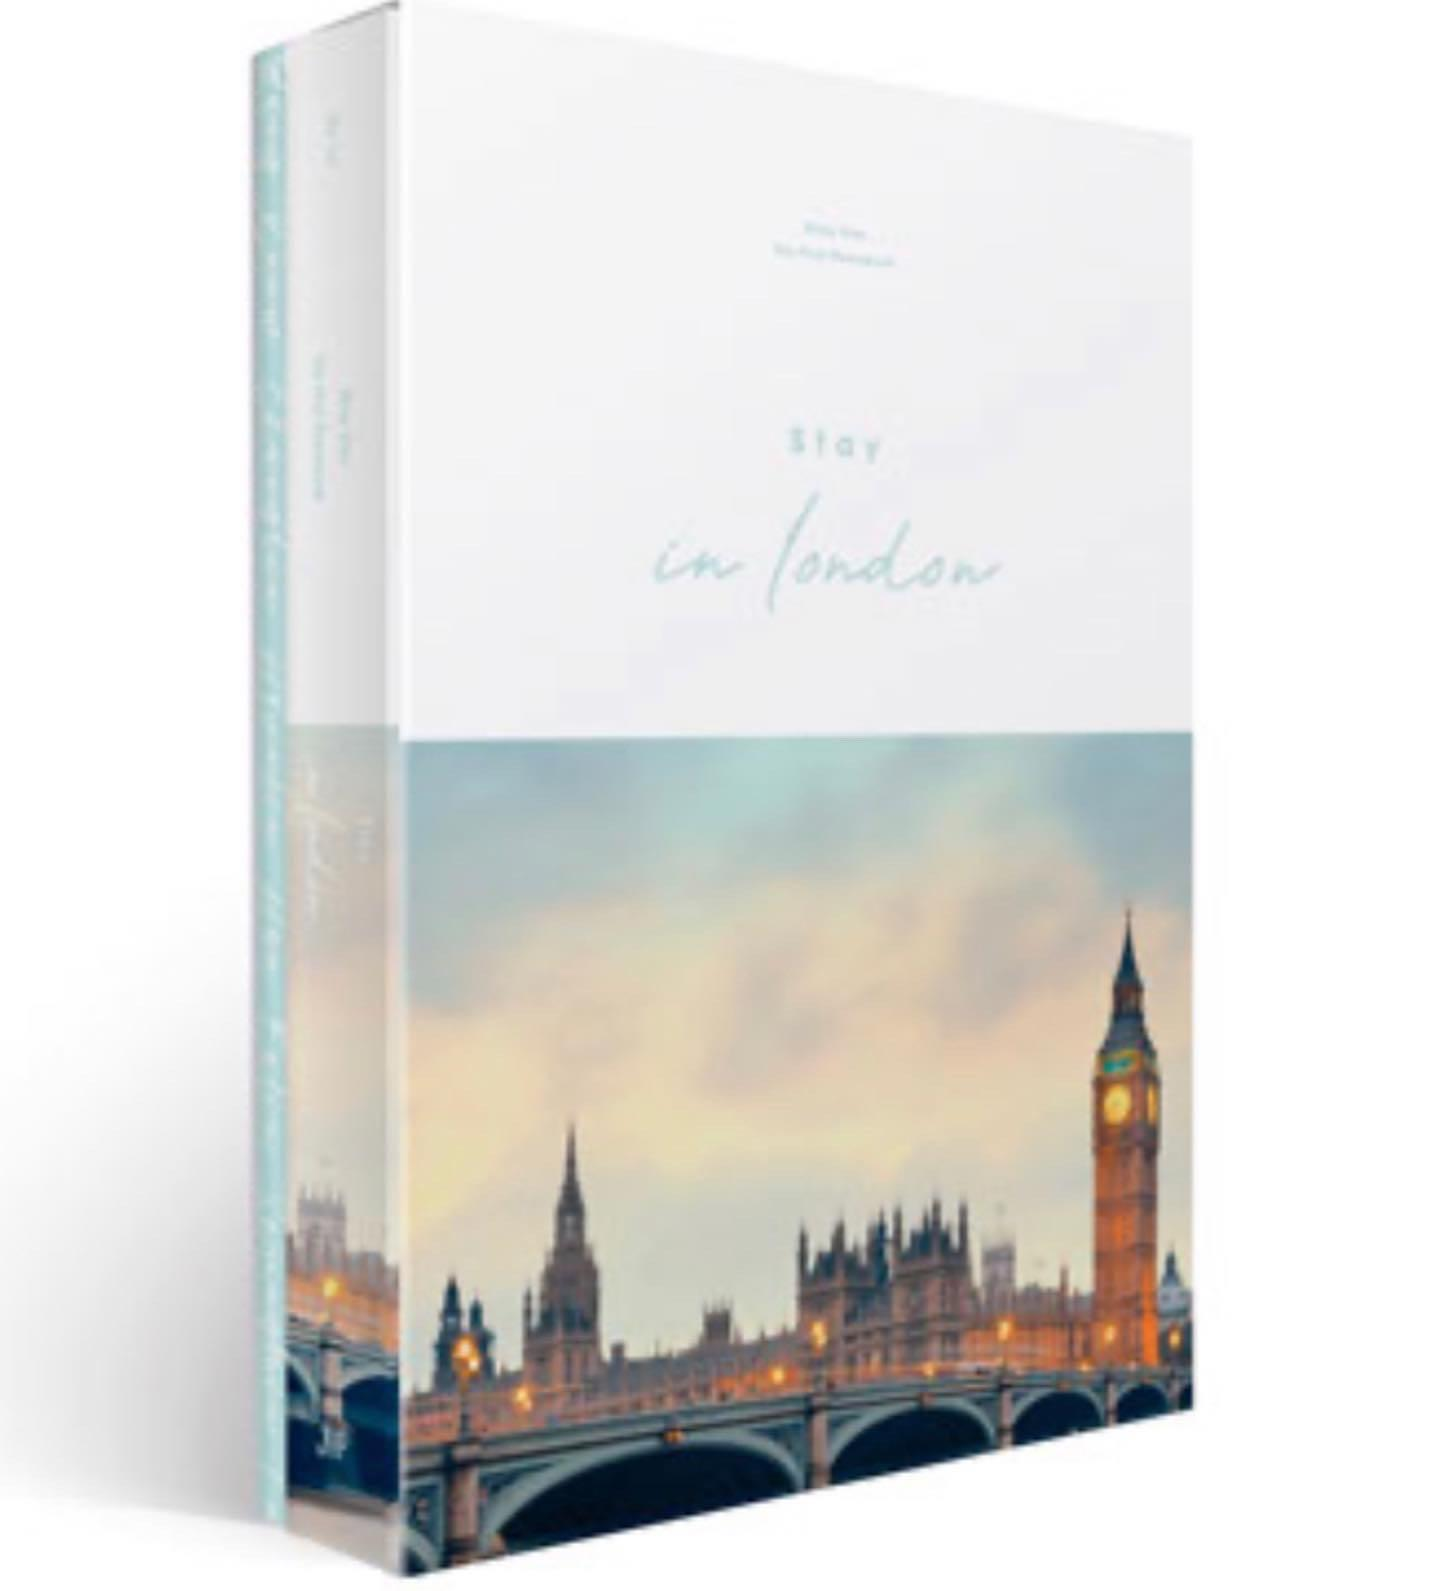 STRAY KIDS [STAY IN LONDON] PHOTO BOOK + FREE AUSTRALIA WIDE TRACKED SHIPPING